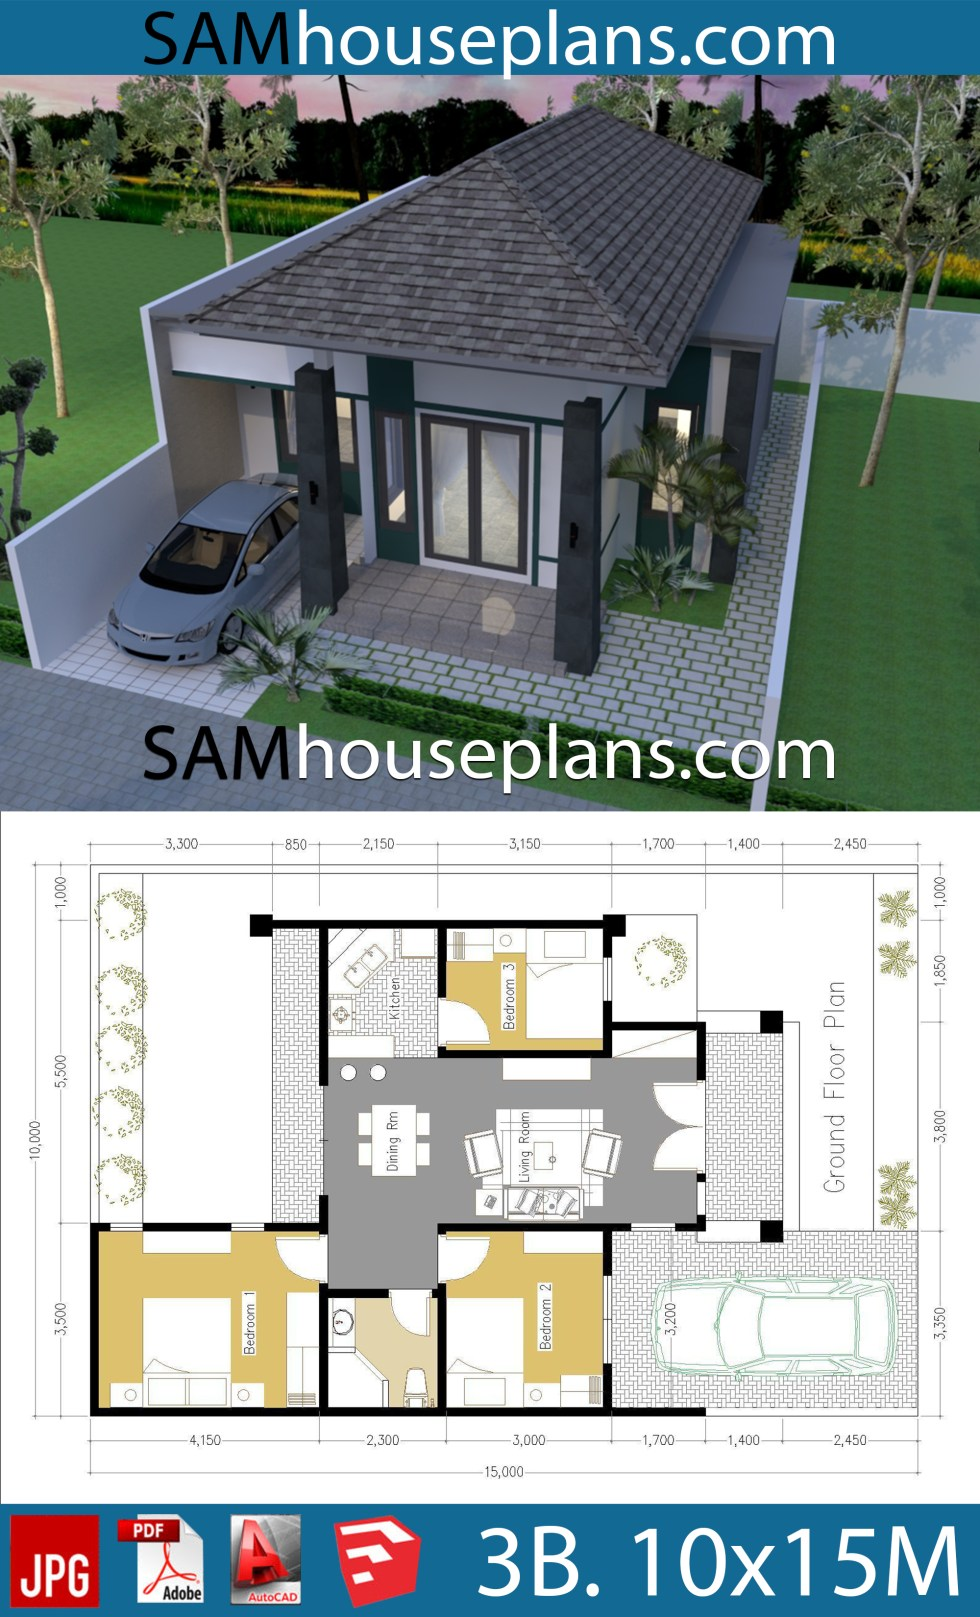 10x15 Room: House Plans 10x15 With 3 Bedrooms